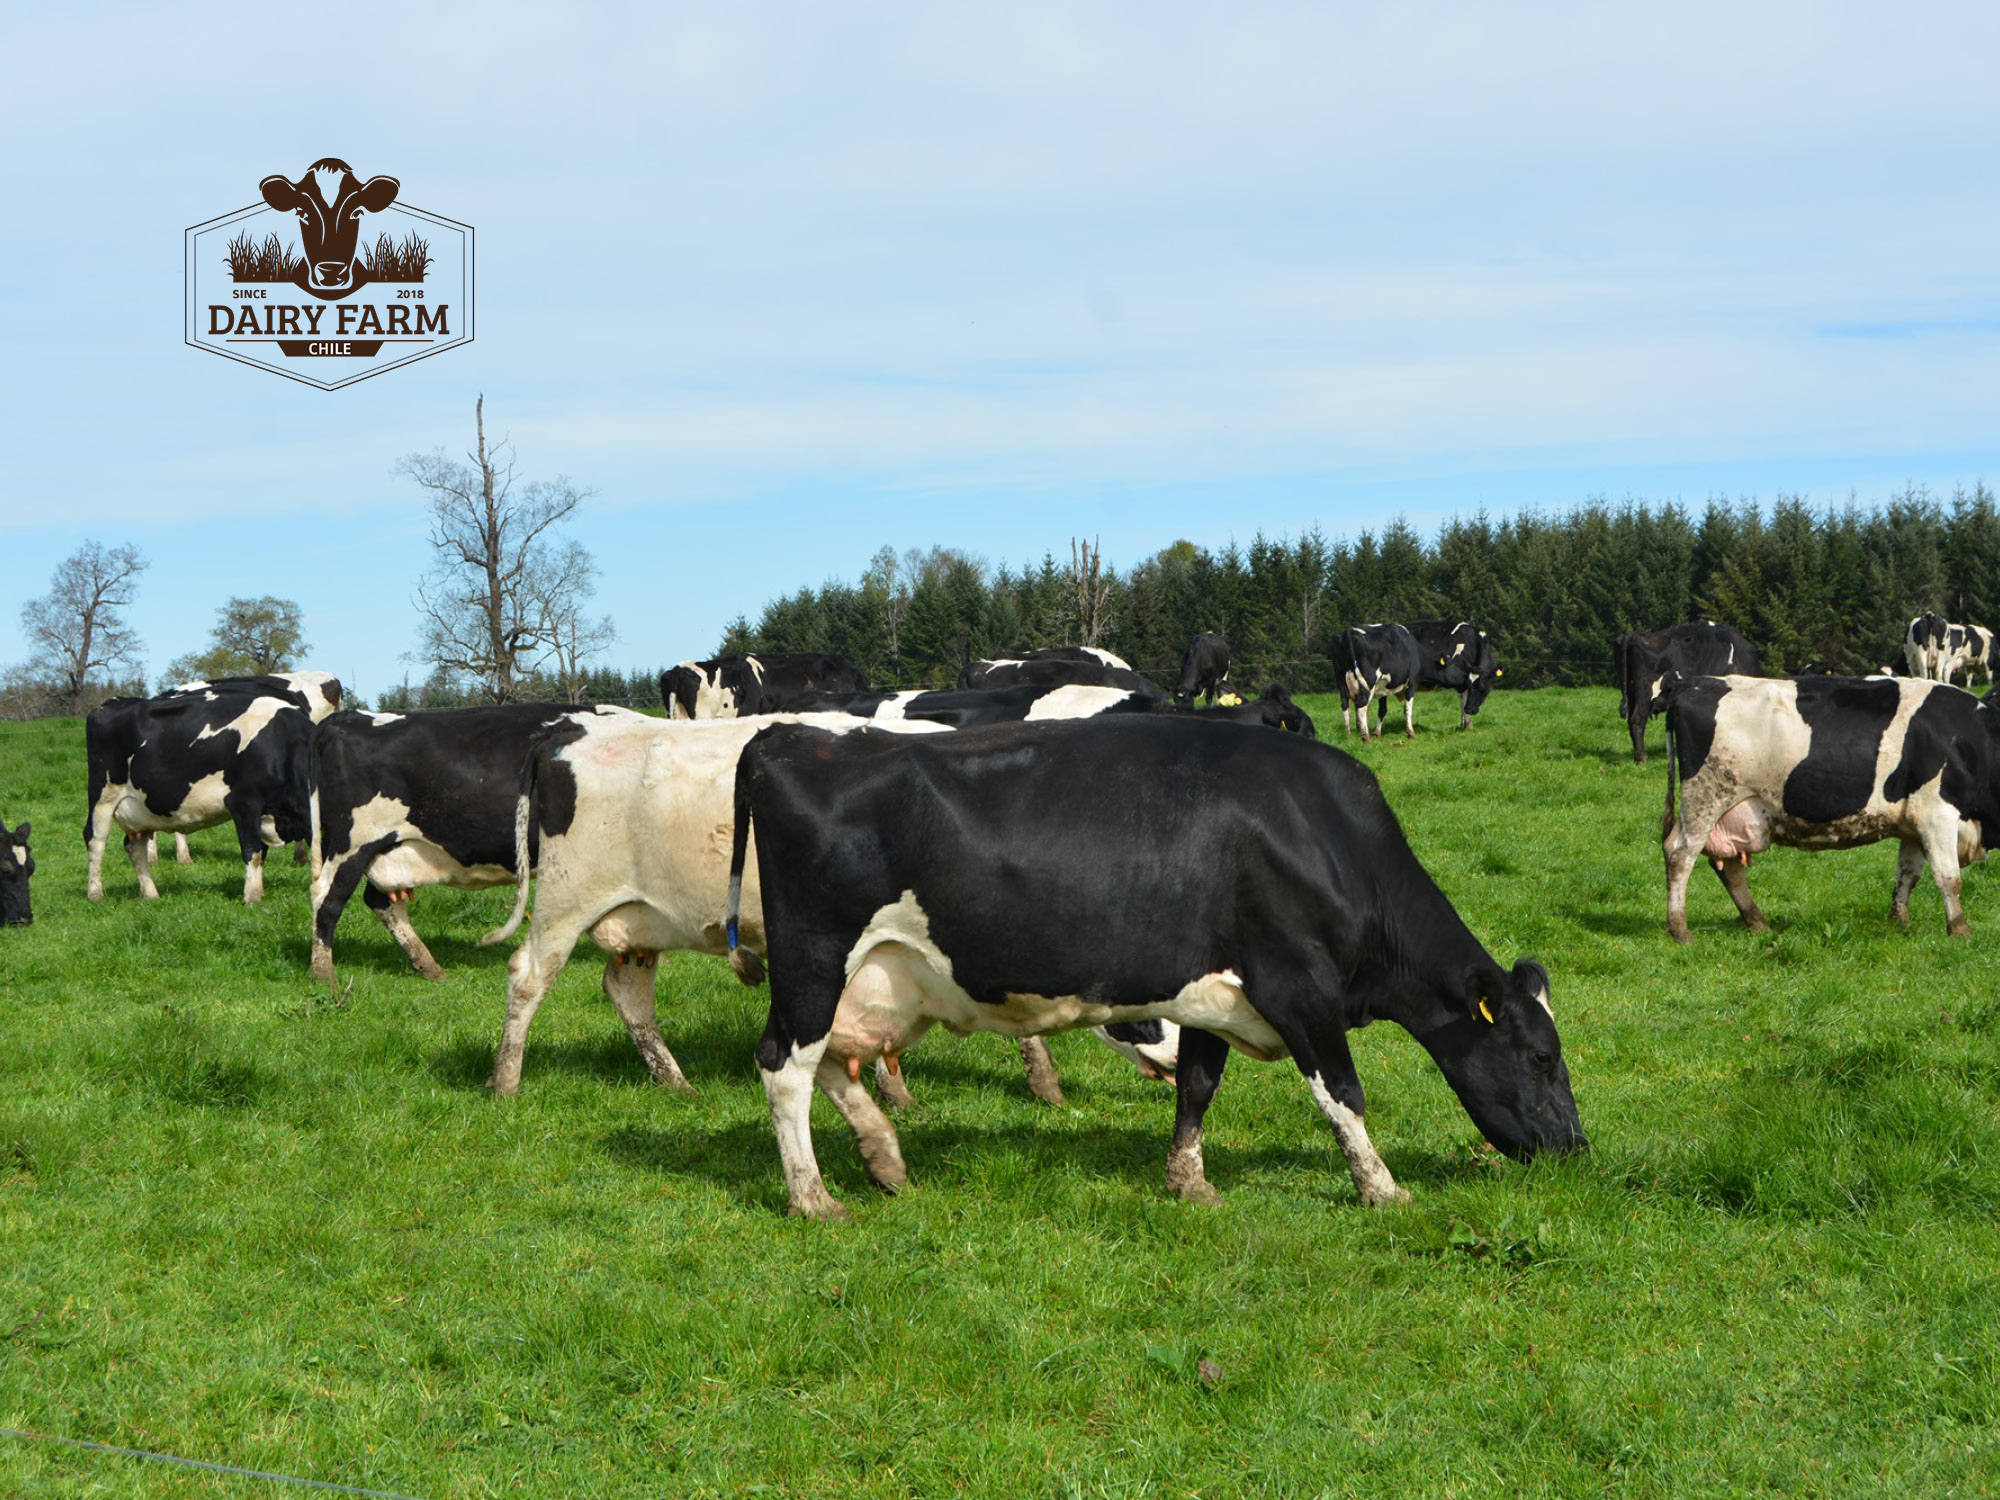 JOSERA DairySafe - lowering the incidence of metritis after calving